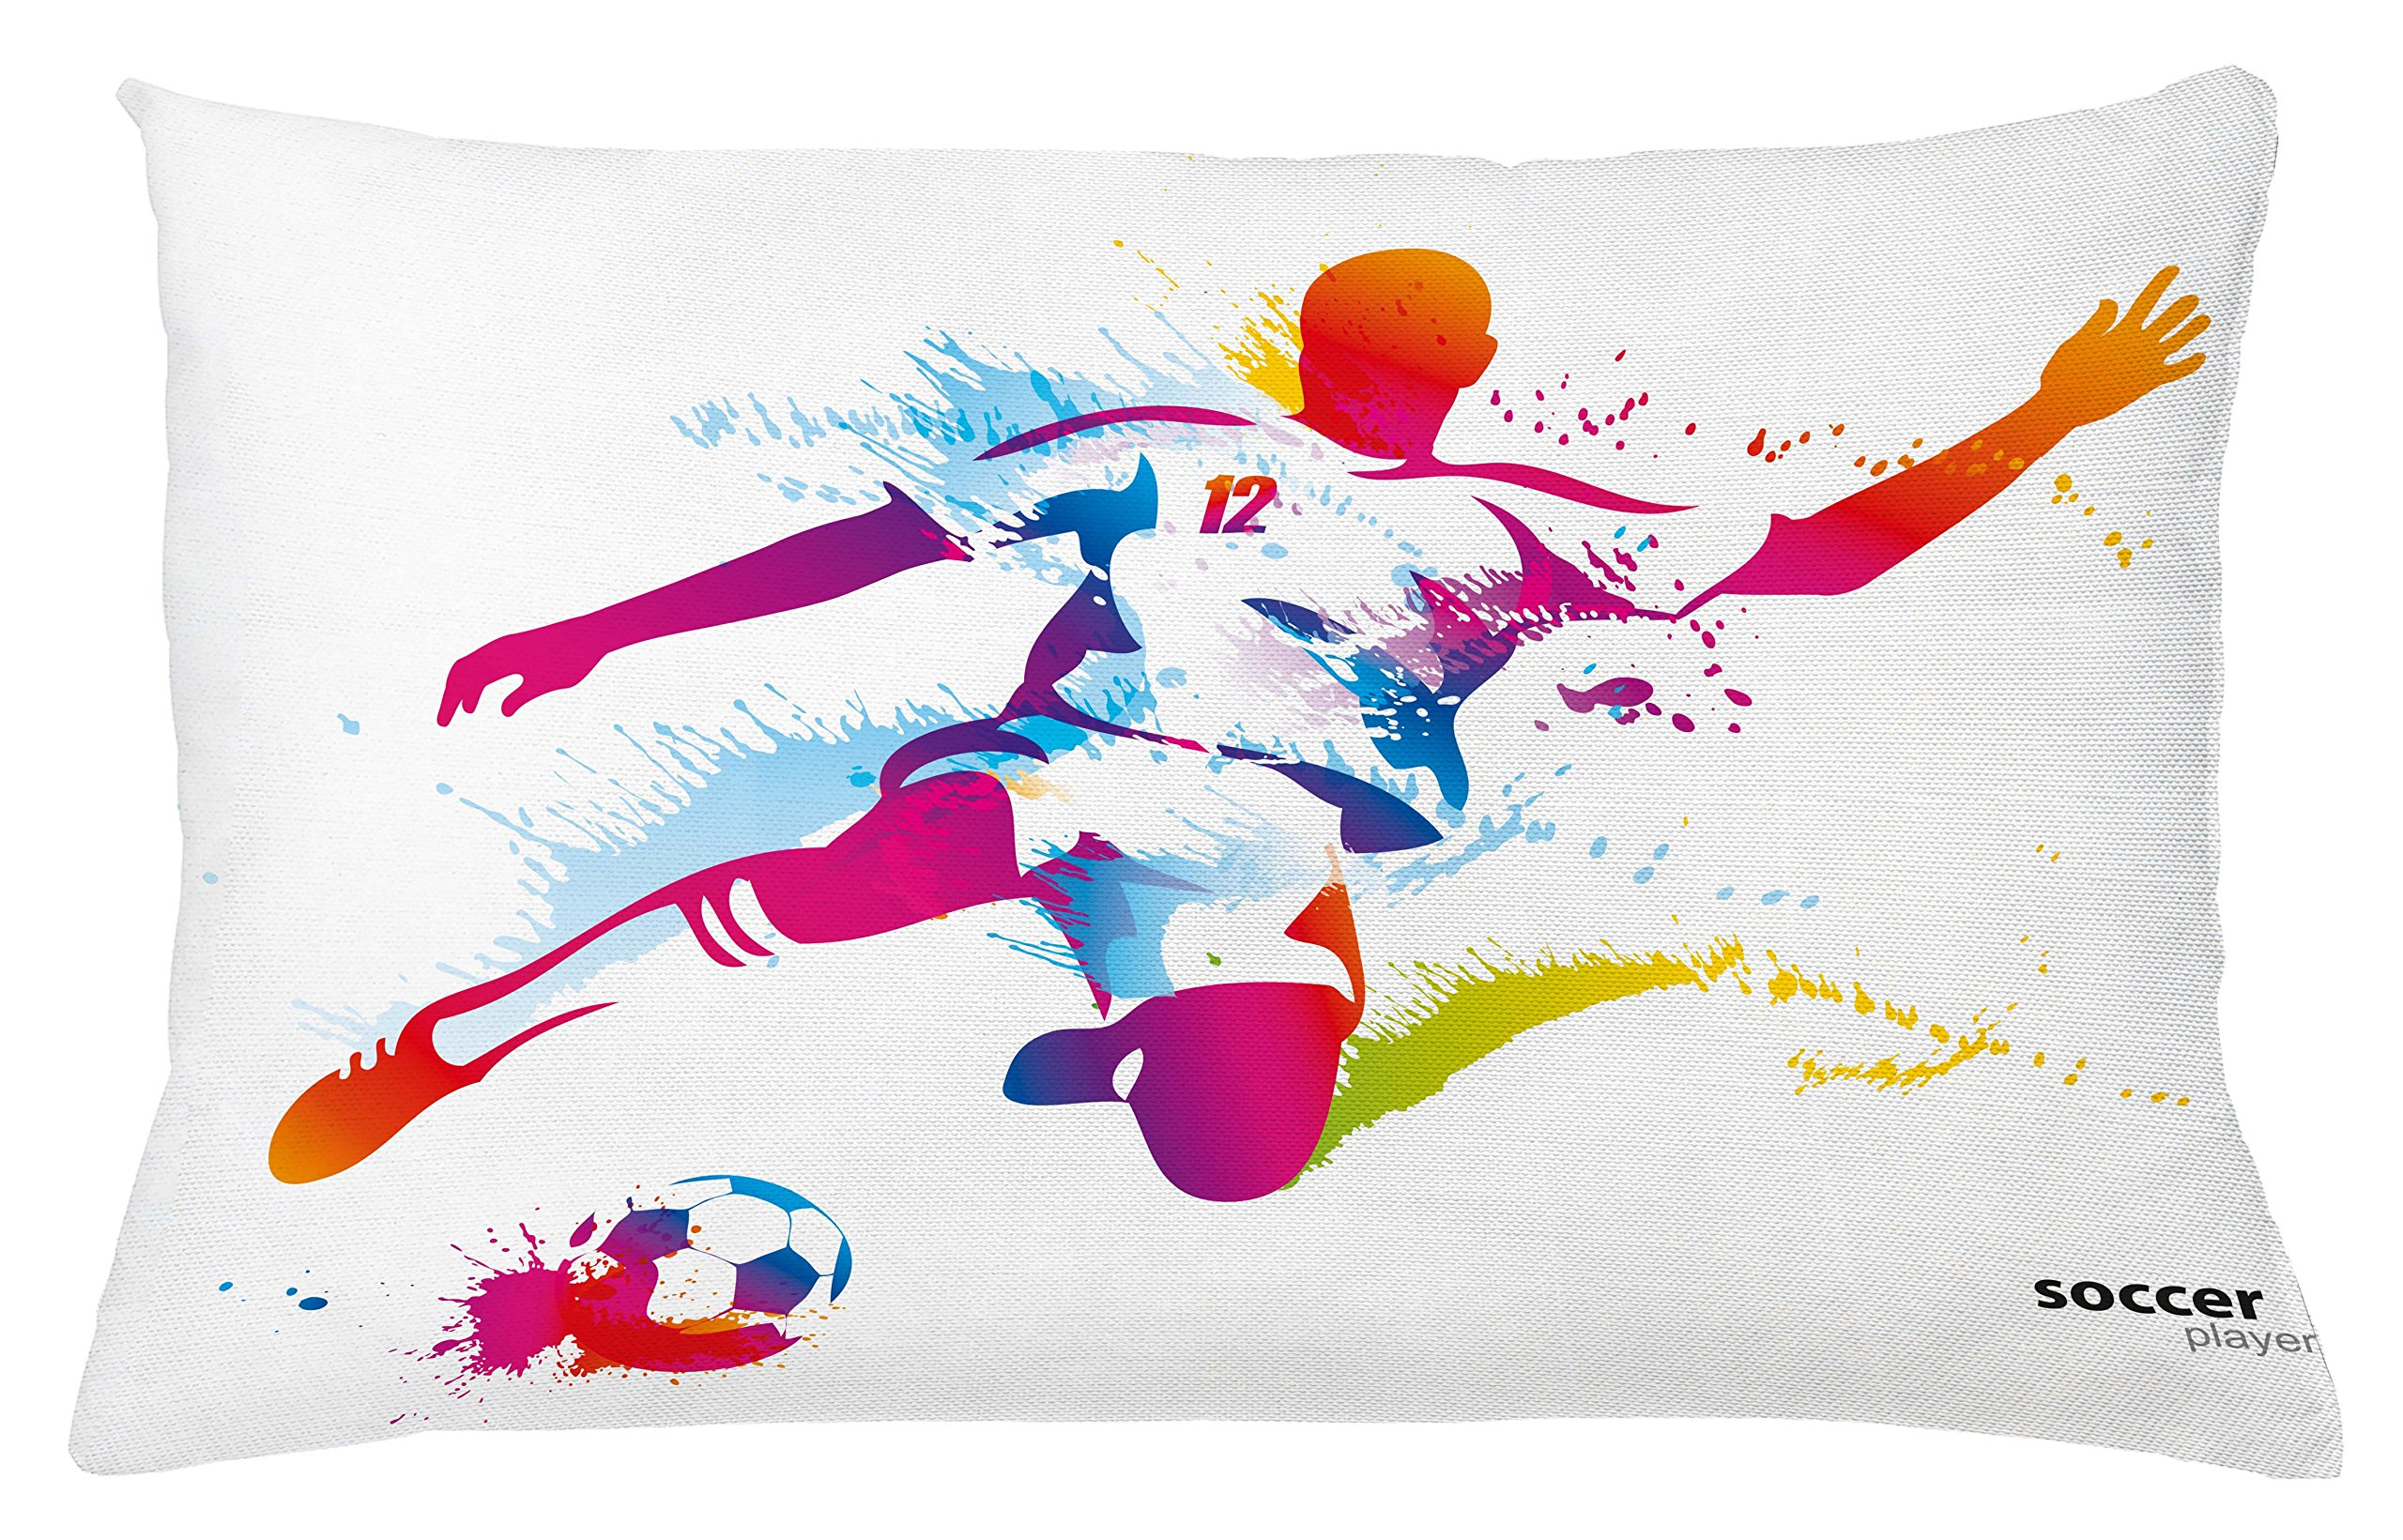 Ambesonne Teen Room Throw Pillow Cushion Cover, Soccer Proffesional Player Kicks Ball Watercolor Style Spray Championship Image, Decorative Rectangle Accent Pillow Case, 26'' X 16'', Magenta Orange by Ambesonne